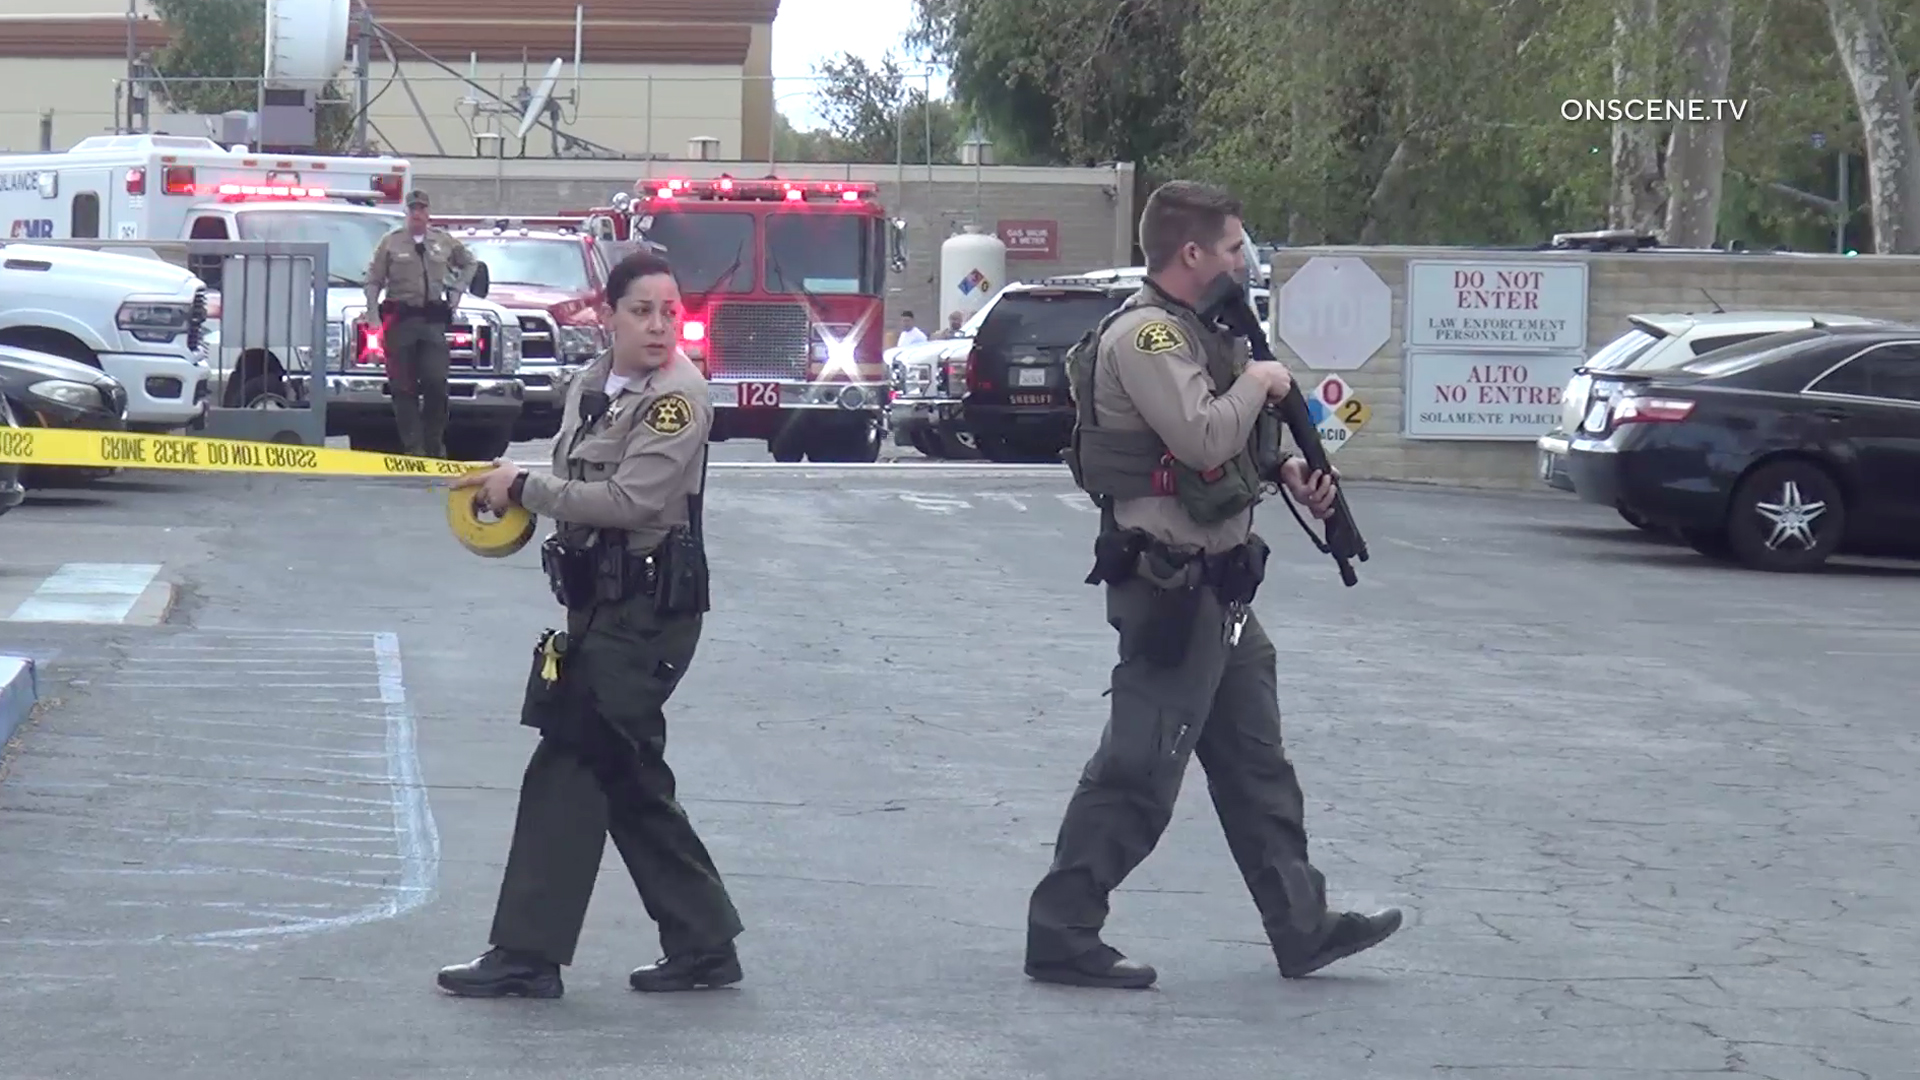 Deputies work at the scene of a deputy-involved shooting in the parking lot of the Los Angeles County Sheriff's Department's Santa Clarita Valley Station on March 1, 2020. (Credit: OnScene)